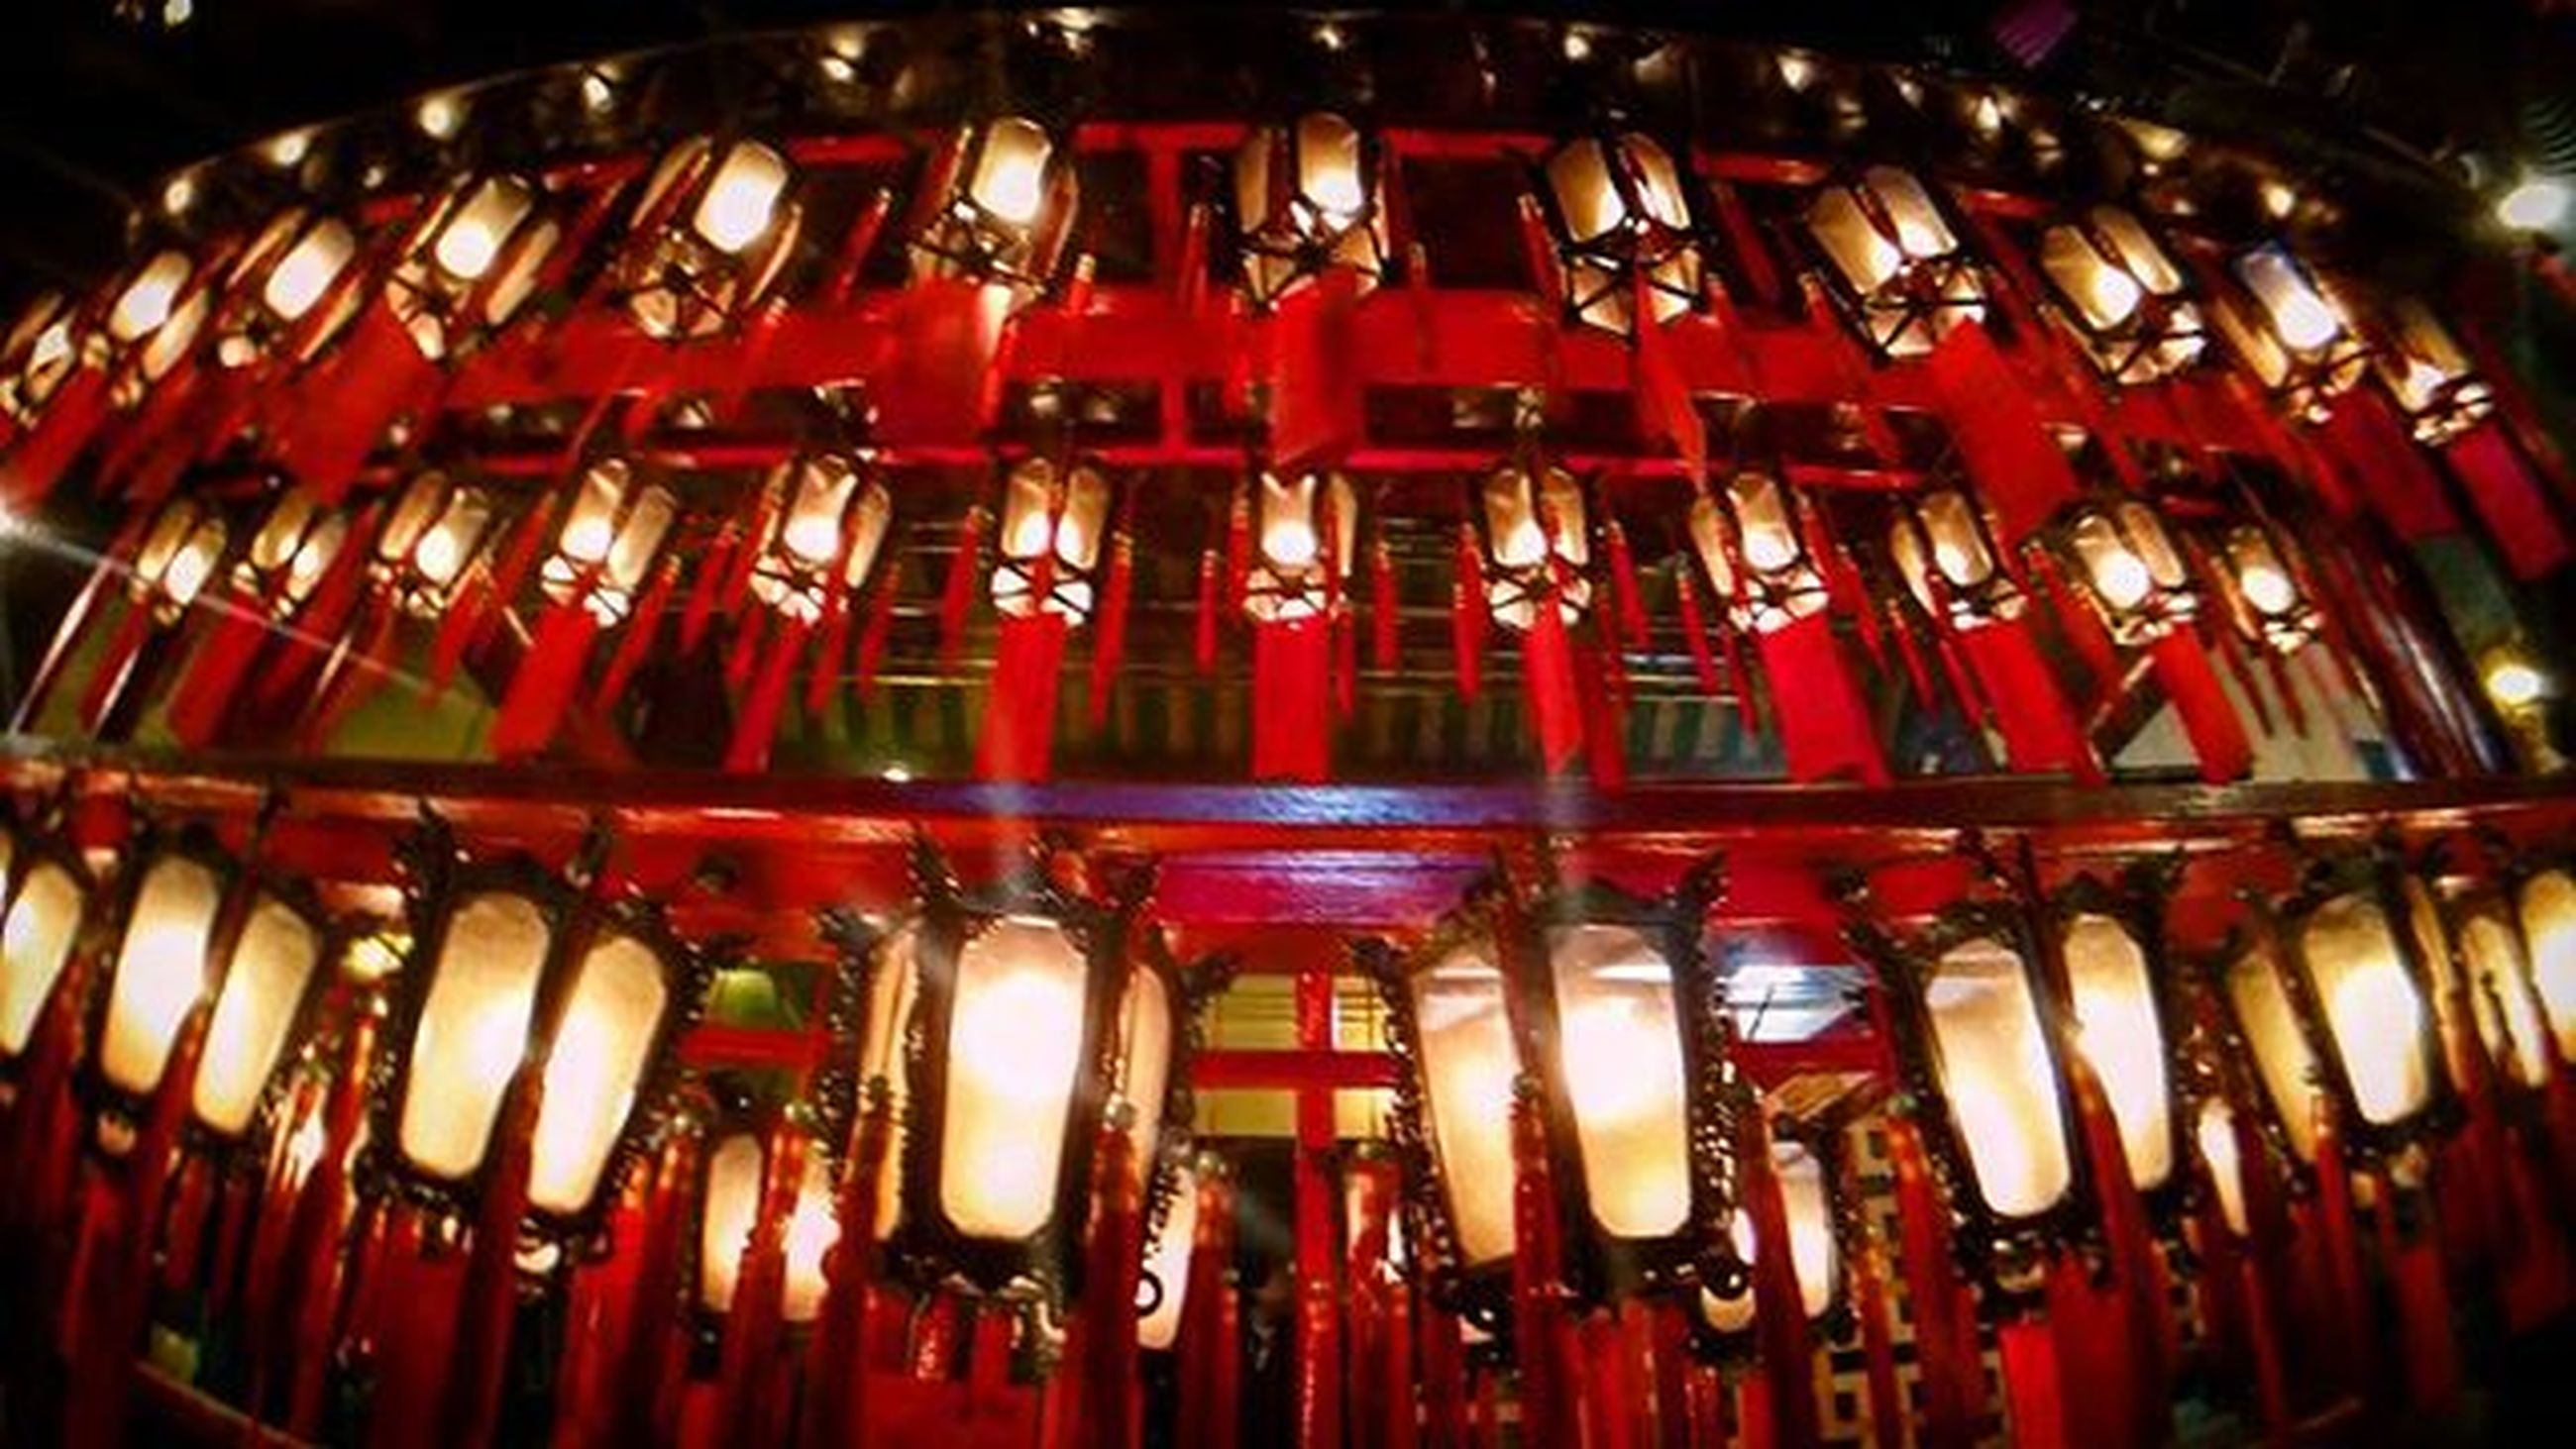 indoors, illuminated, in a row, red, hanging, large group of objects, abundance, lighting equipment, night, order, repetition, close-up, side by side, lantern, metal, tradition, no people, low angle view, decoration, arrangement